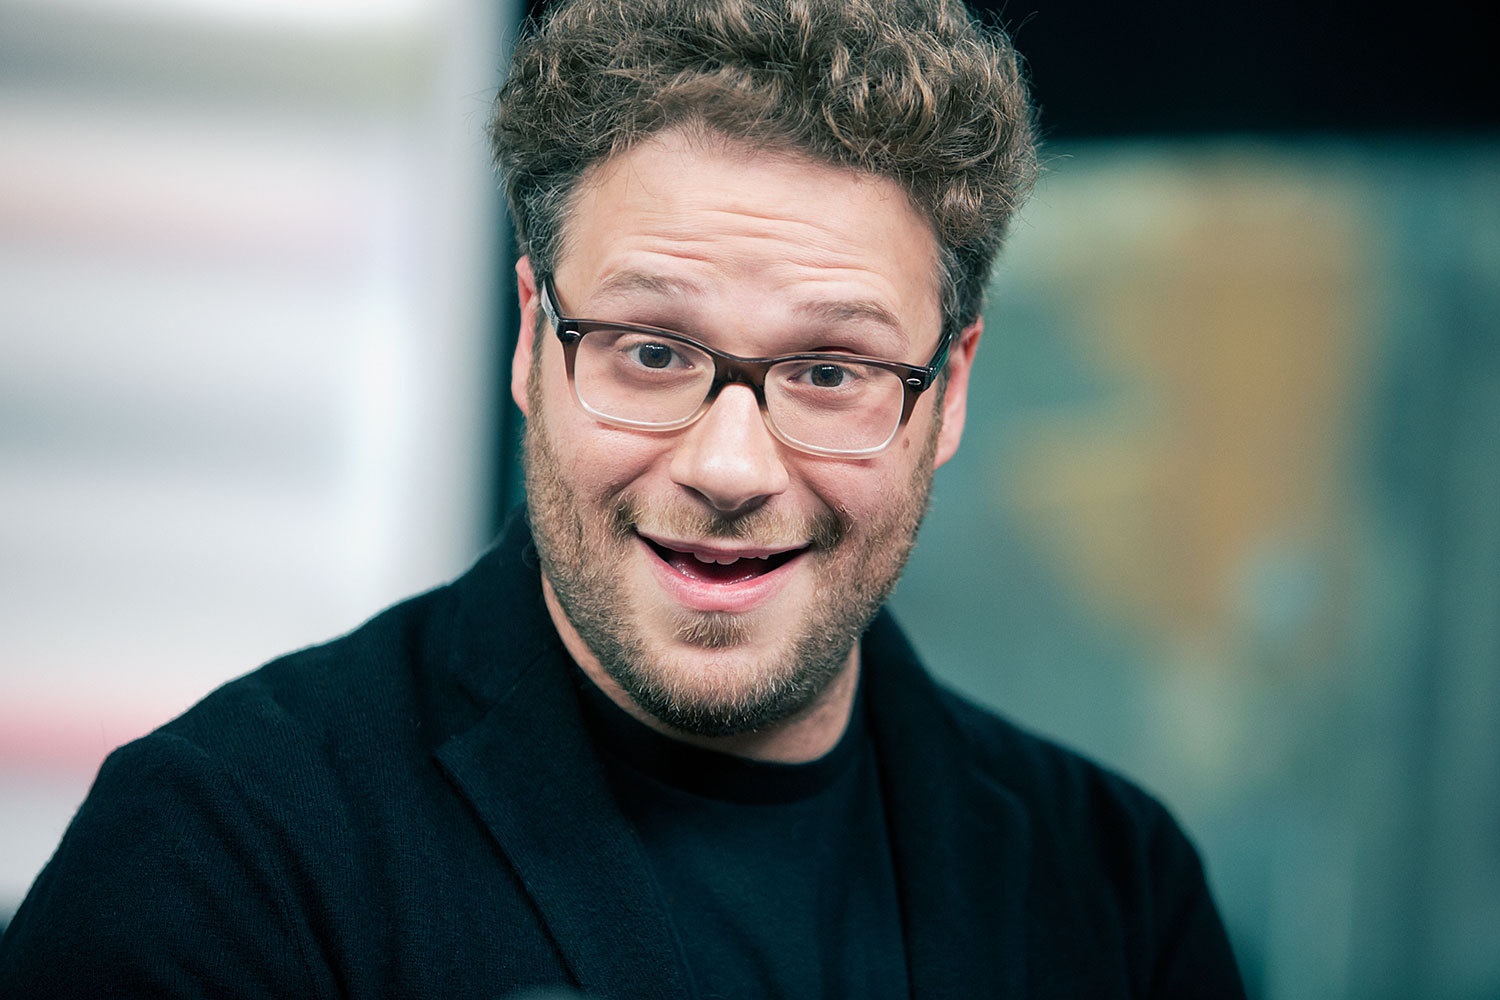 Seth Rogen Fotos Wallpapers High Quality